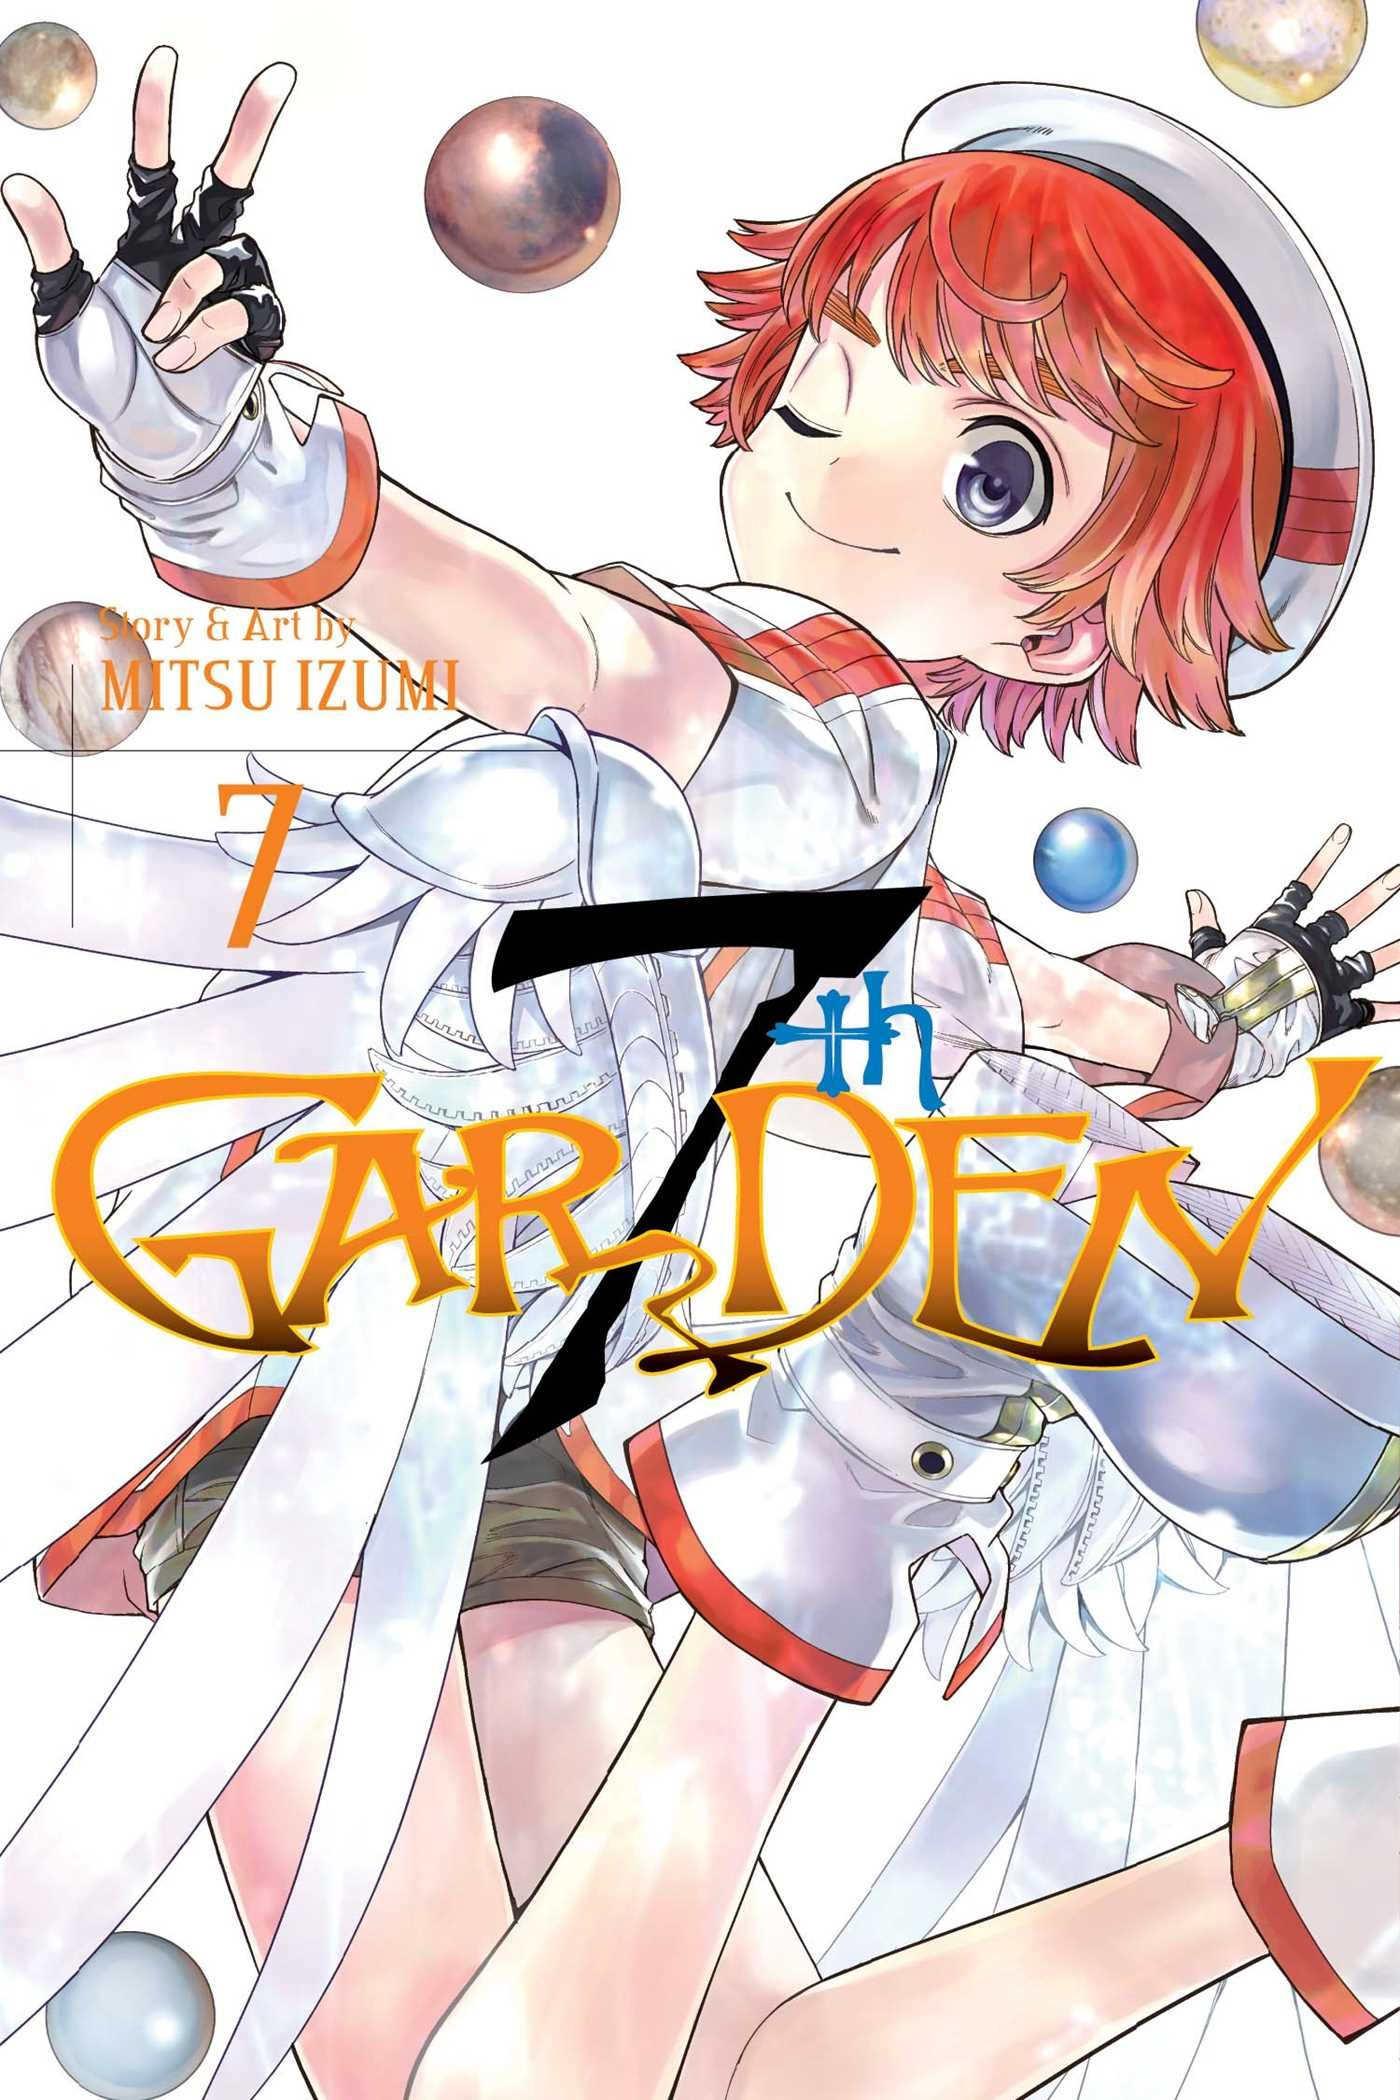 Read Online 7thGARDEN, Vol. 7 pdf epub